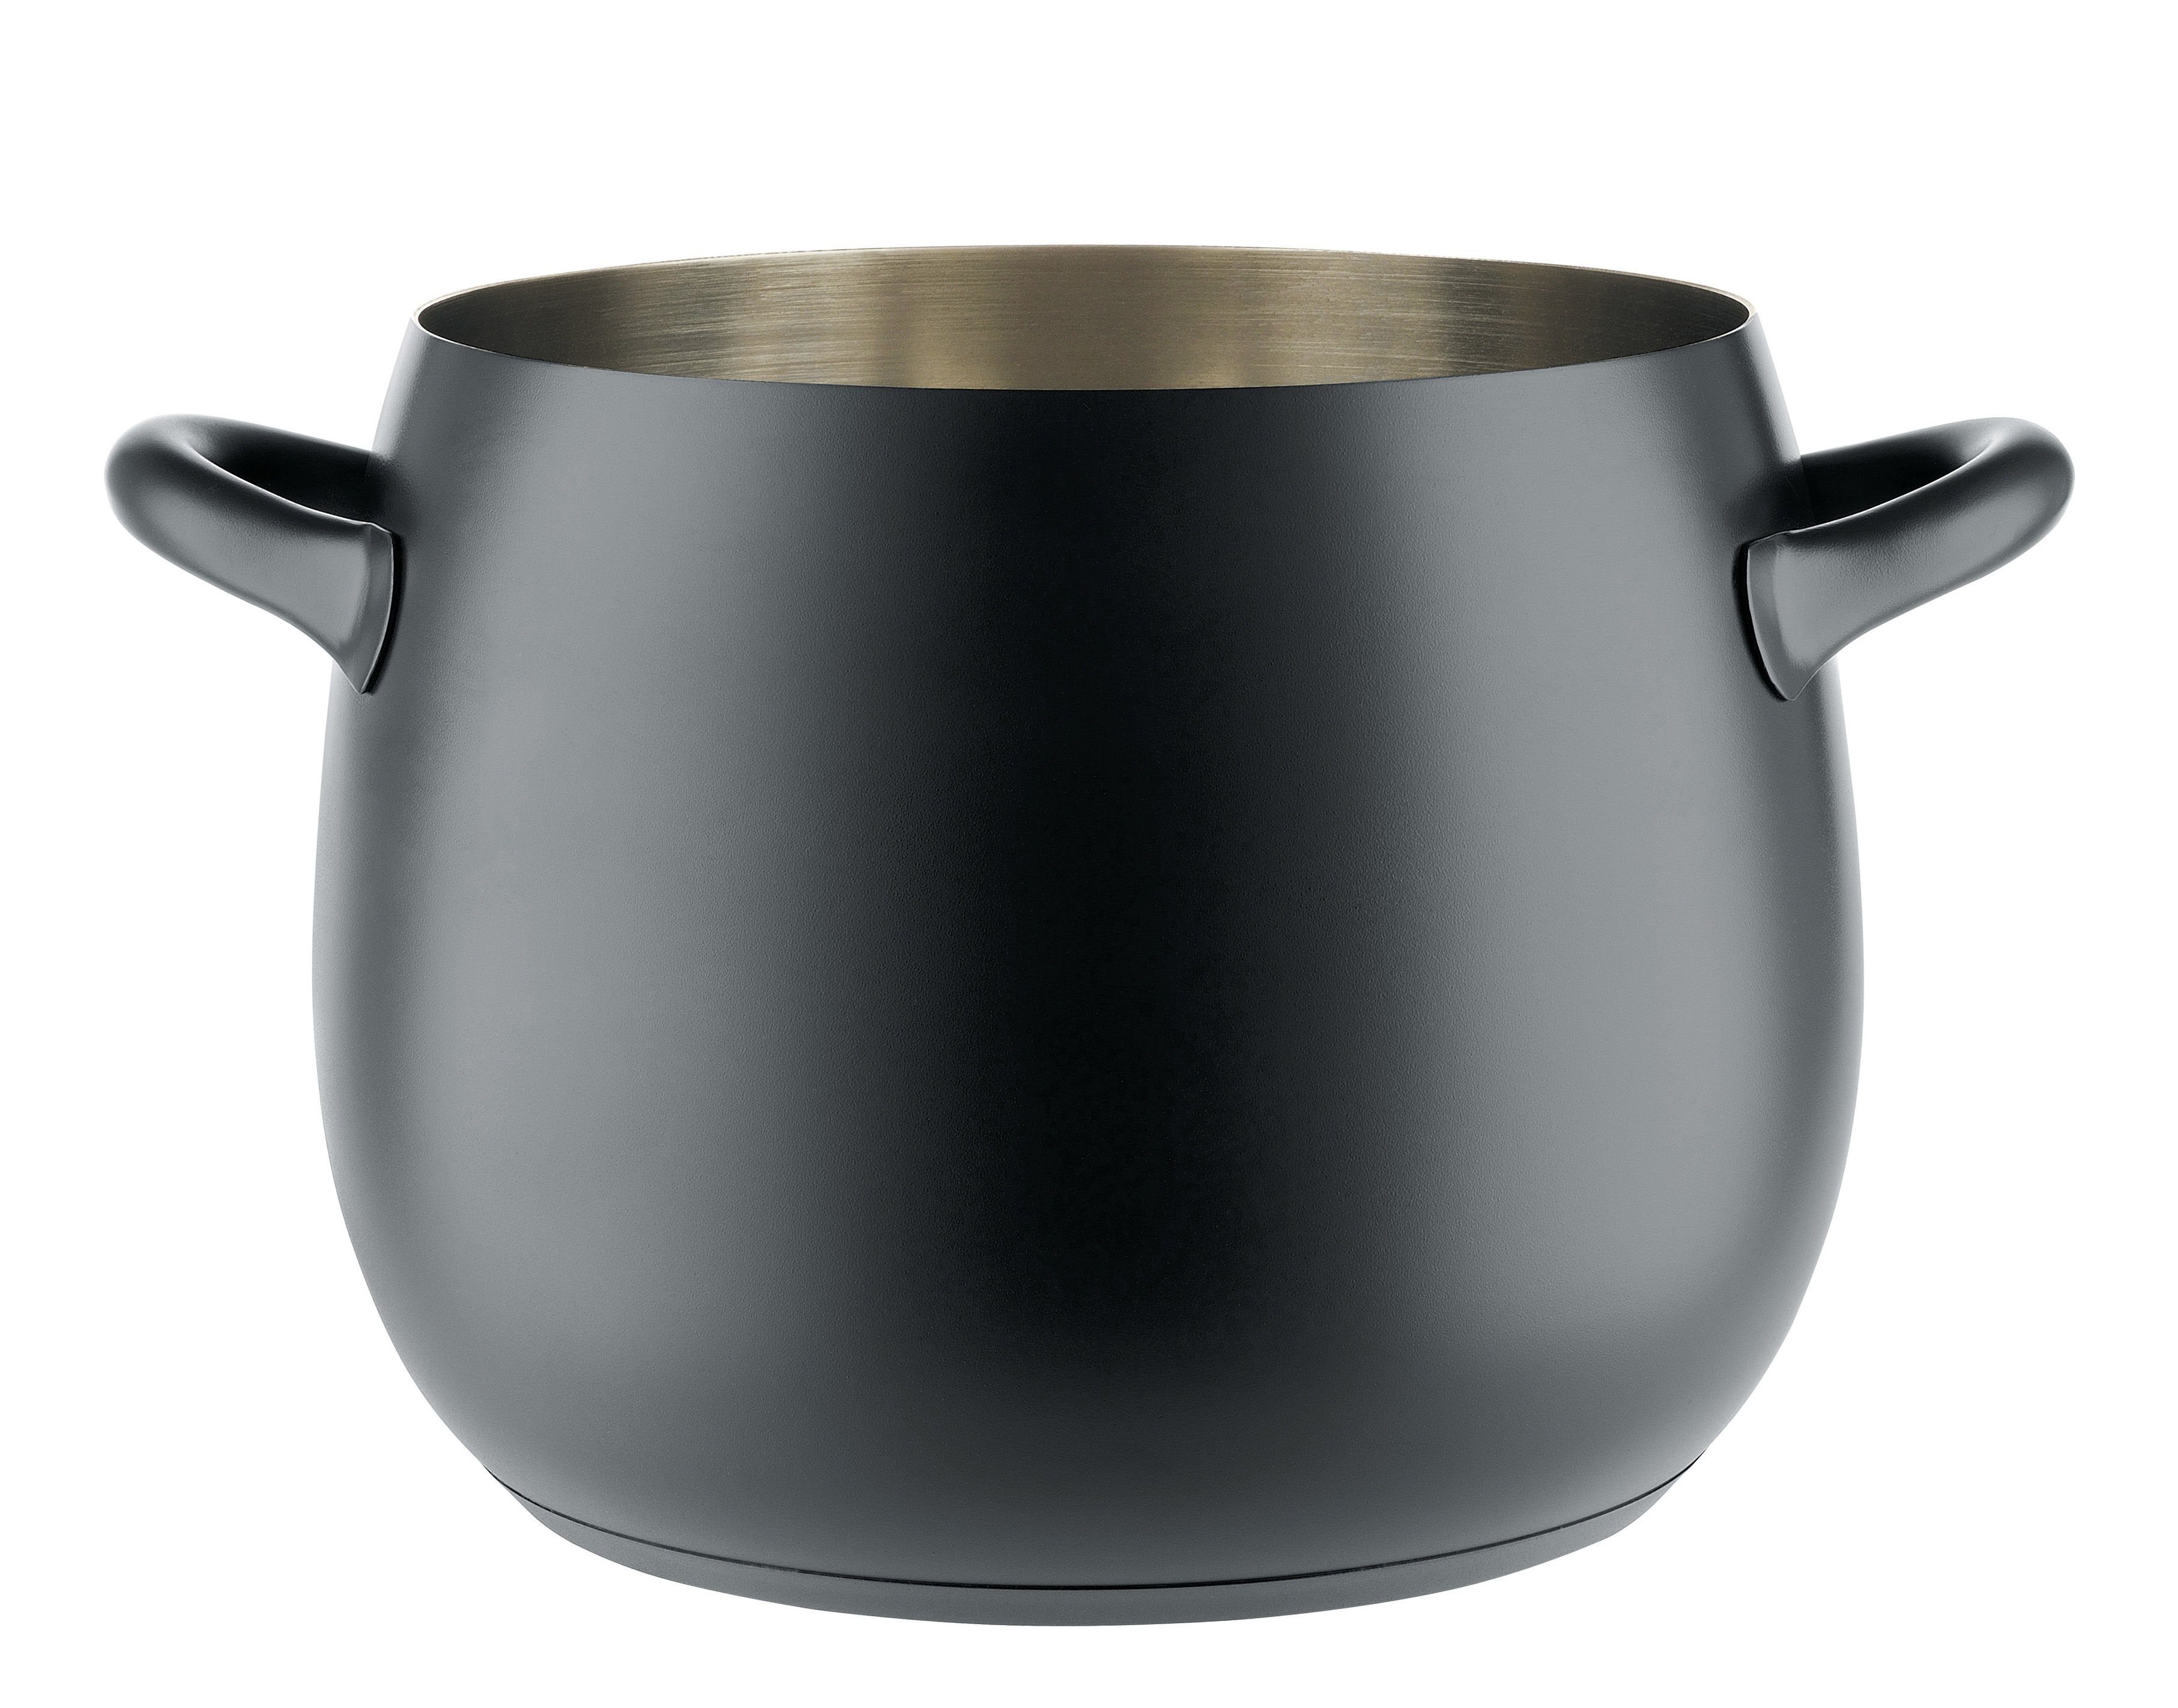 Kitchenware - Pots & Pans - Mami 3.0 Pot - 10 L / With lid by Alessi - Black - Acier magnétique, Silicone resin, Stainless steel